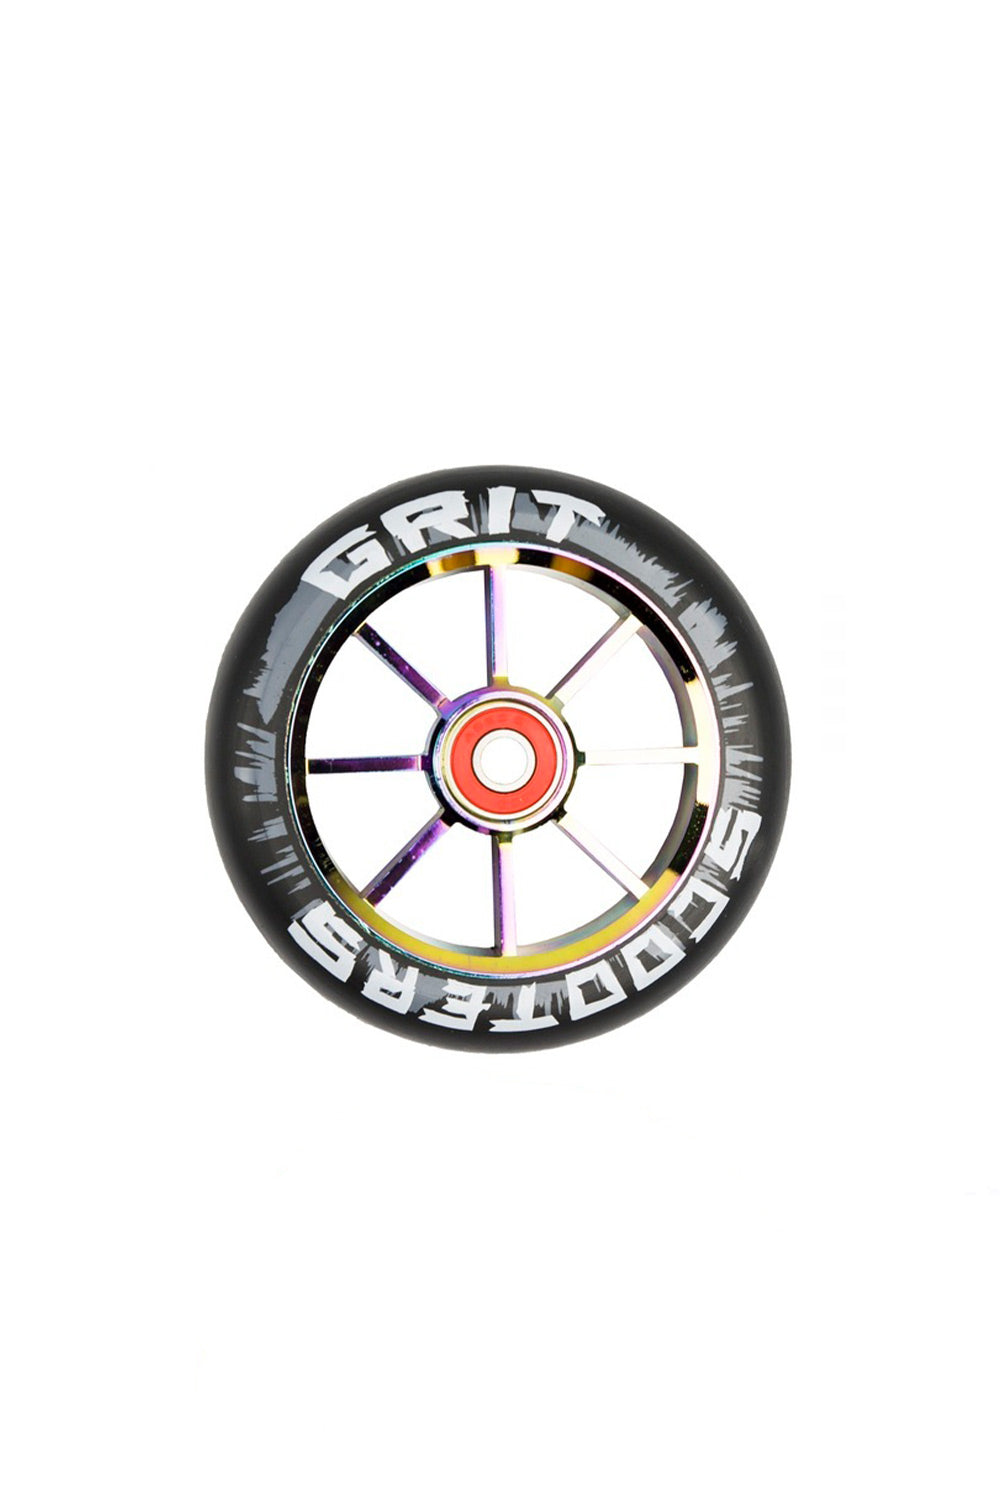 Grit Scooter Wheels | Grit 110mm 8 Spoke Alloy Core Scooter Wheel Pack